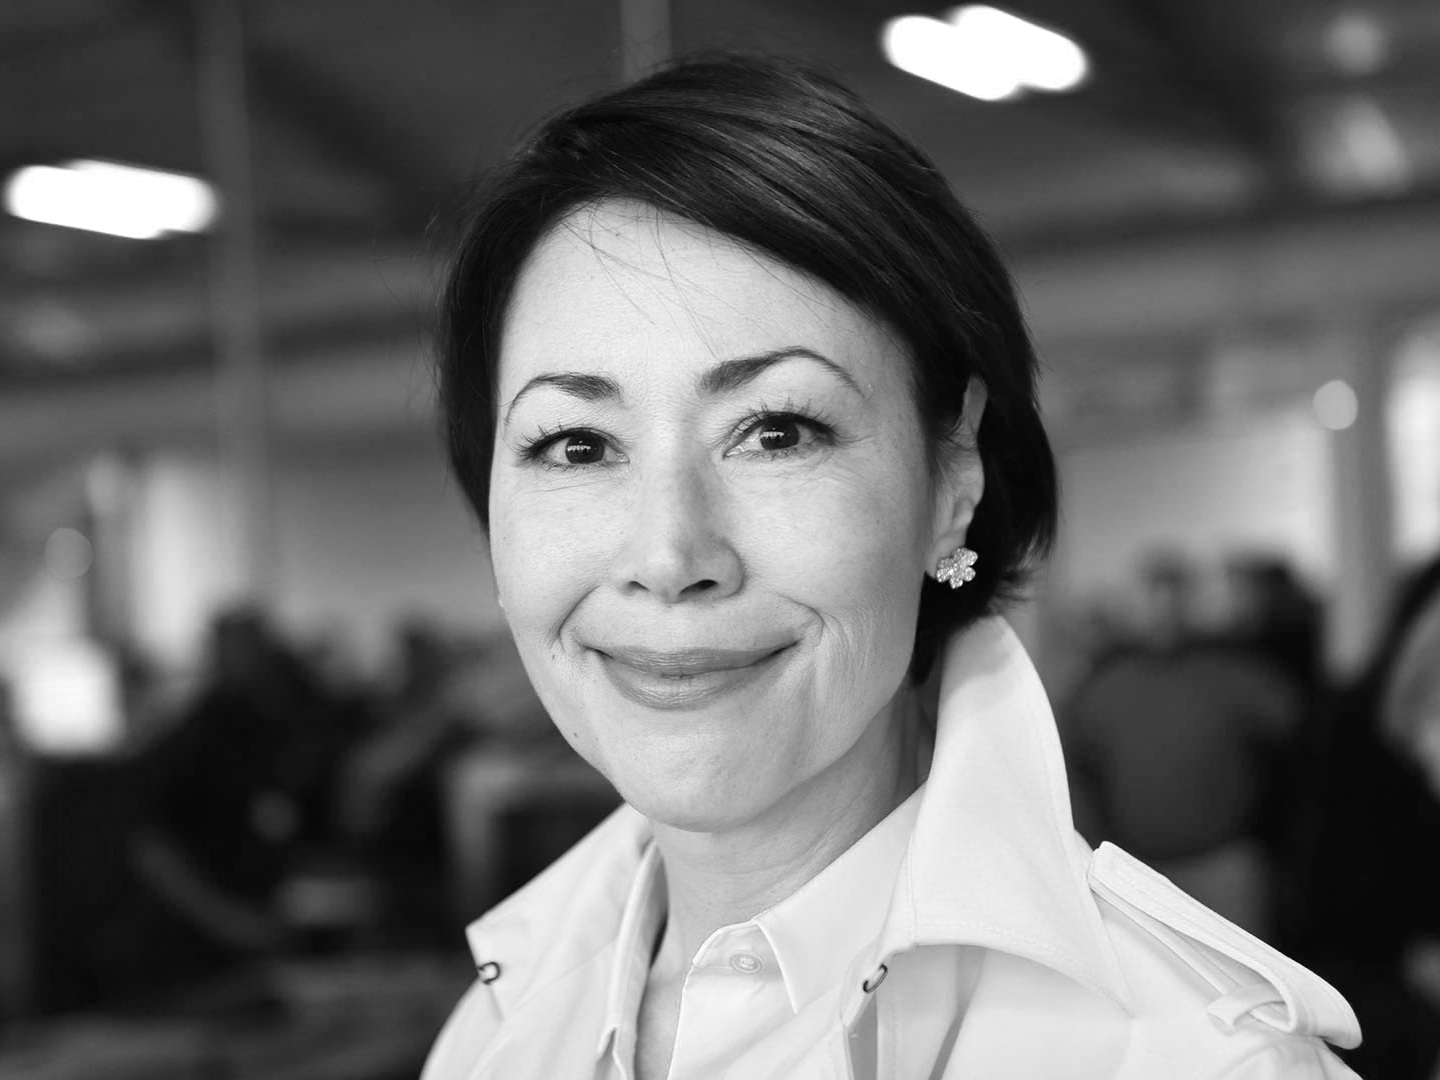 Ann Curry - American television personality, news journalist, photojournalist